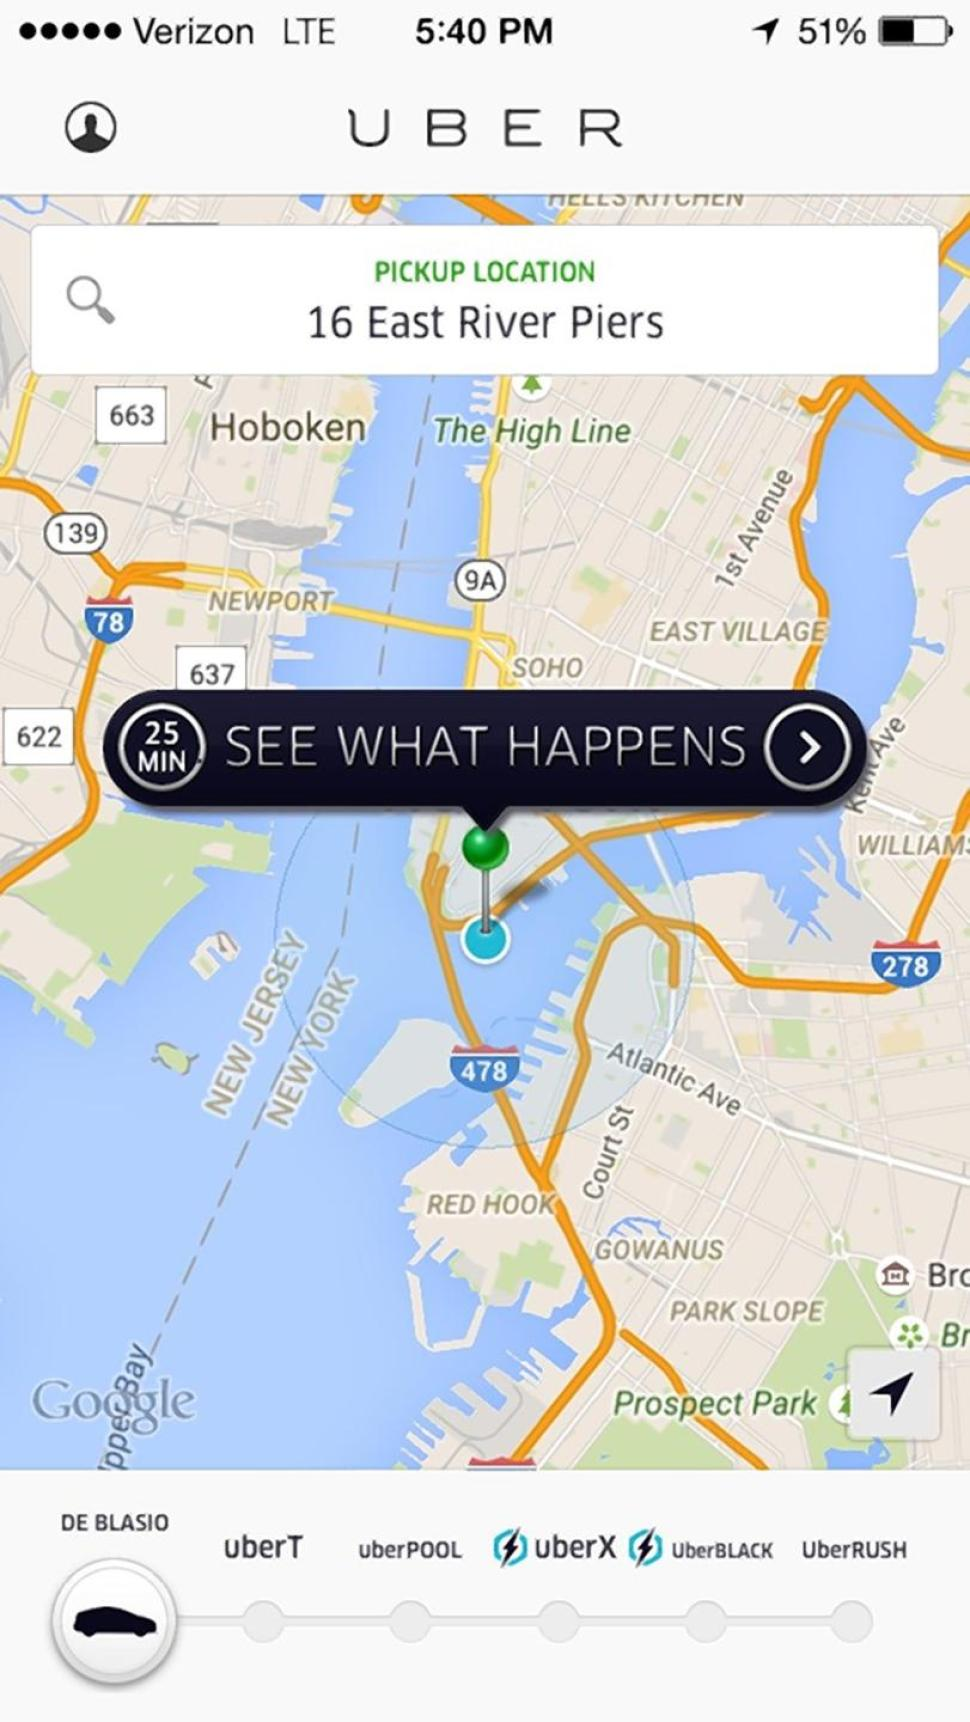 Uber Fights For Free Market In New York, Or Does It?